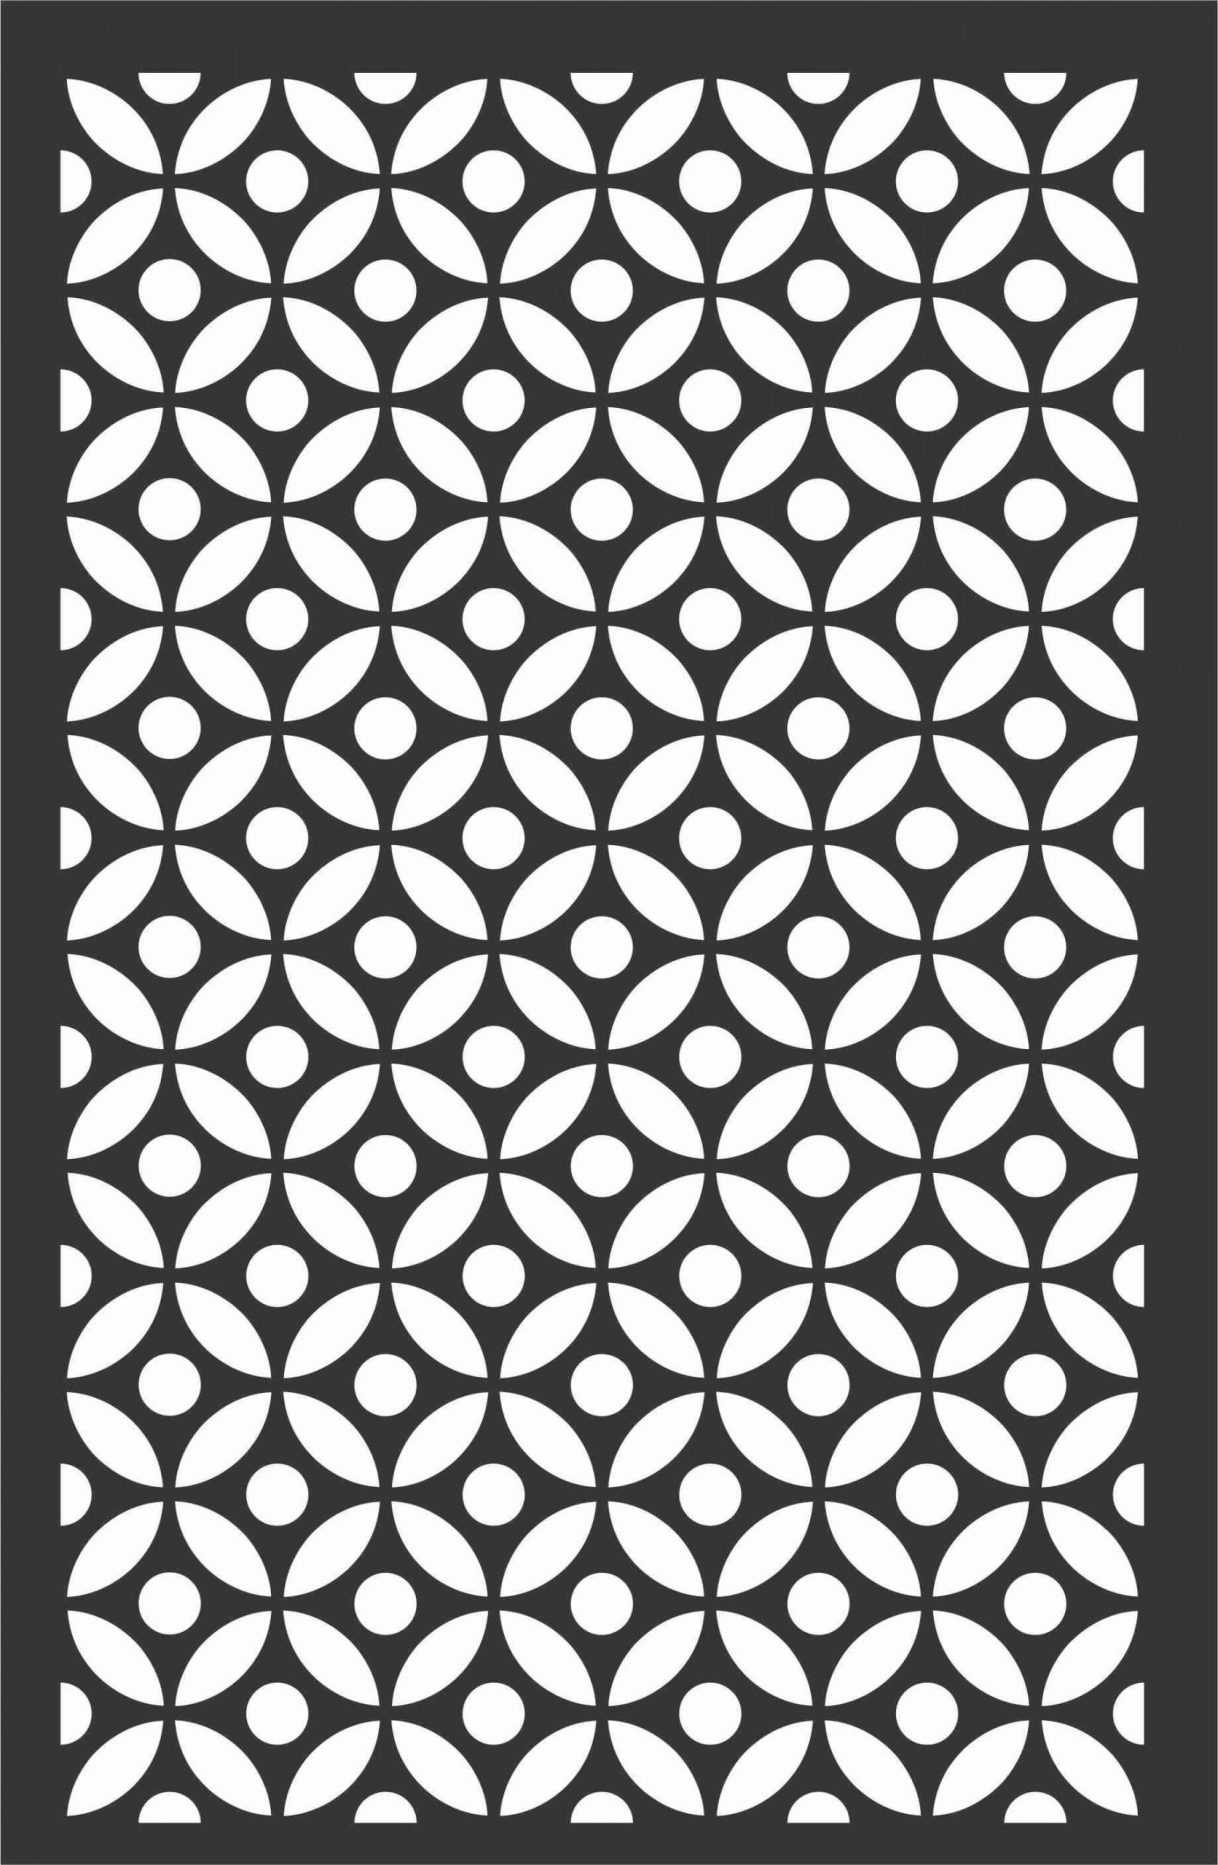 Floral Screen Patterns Design 20 Free DXF File